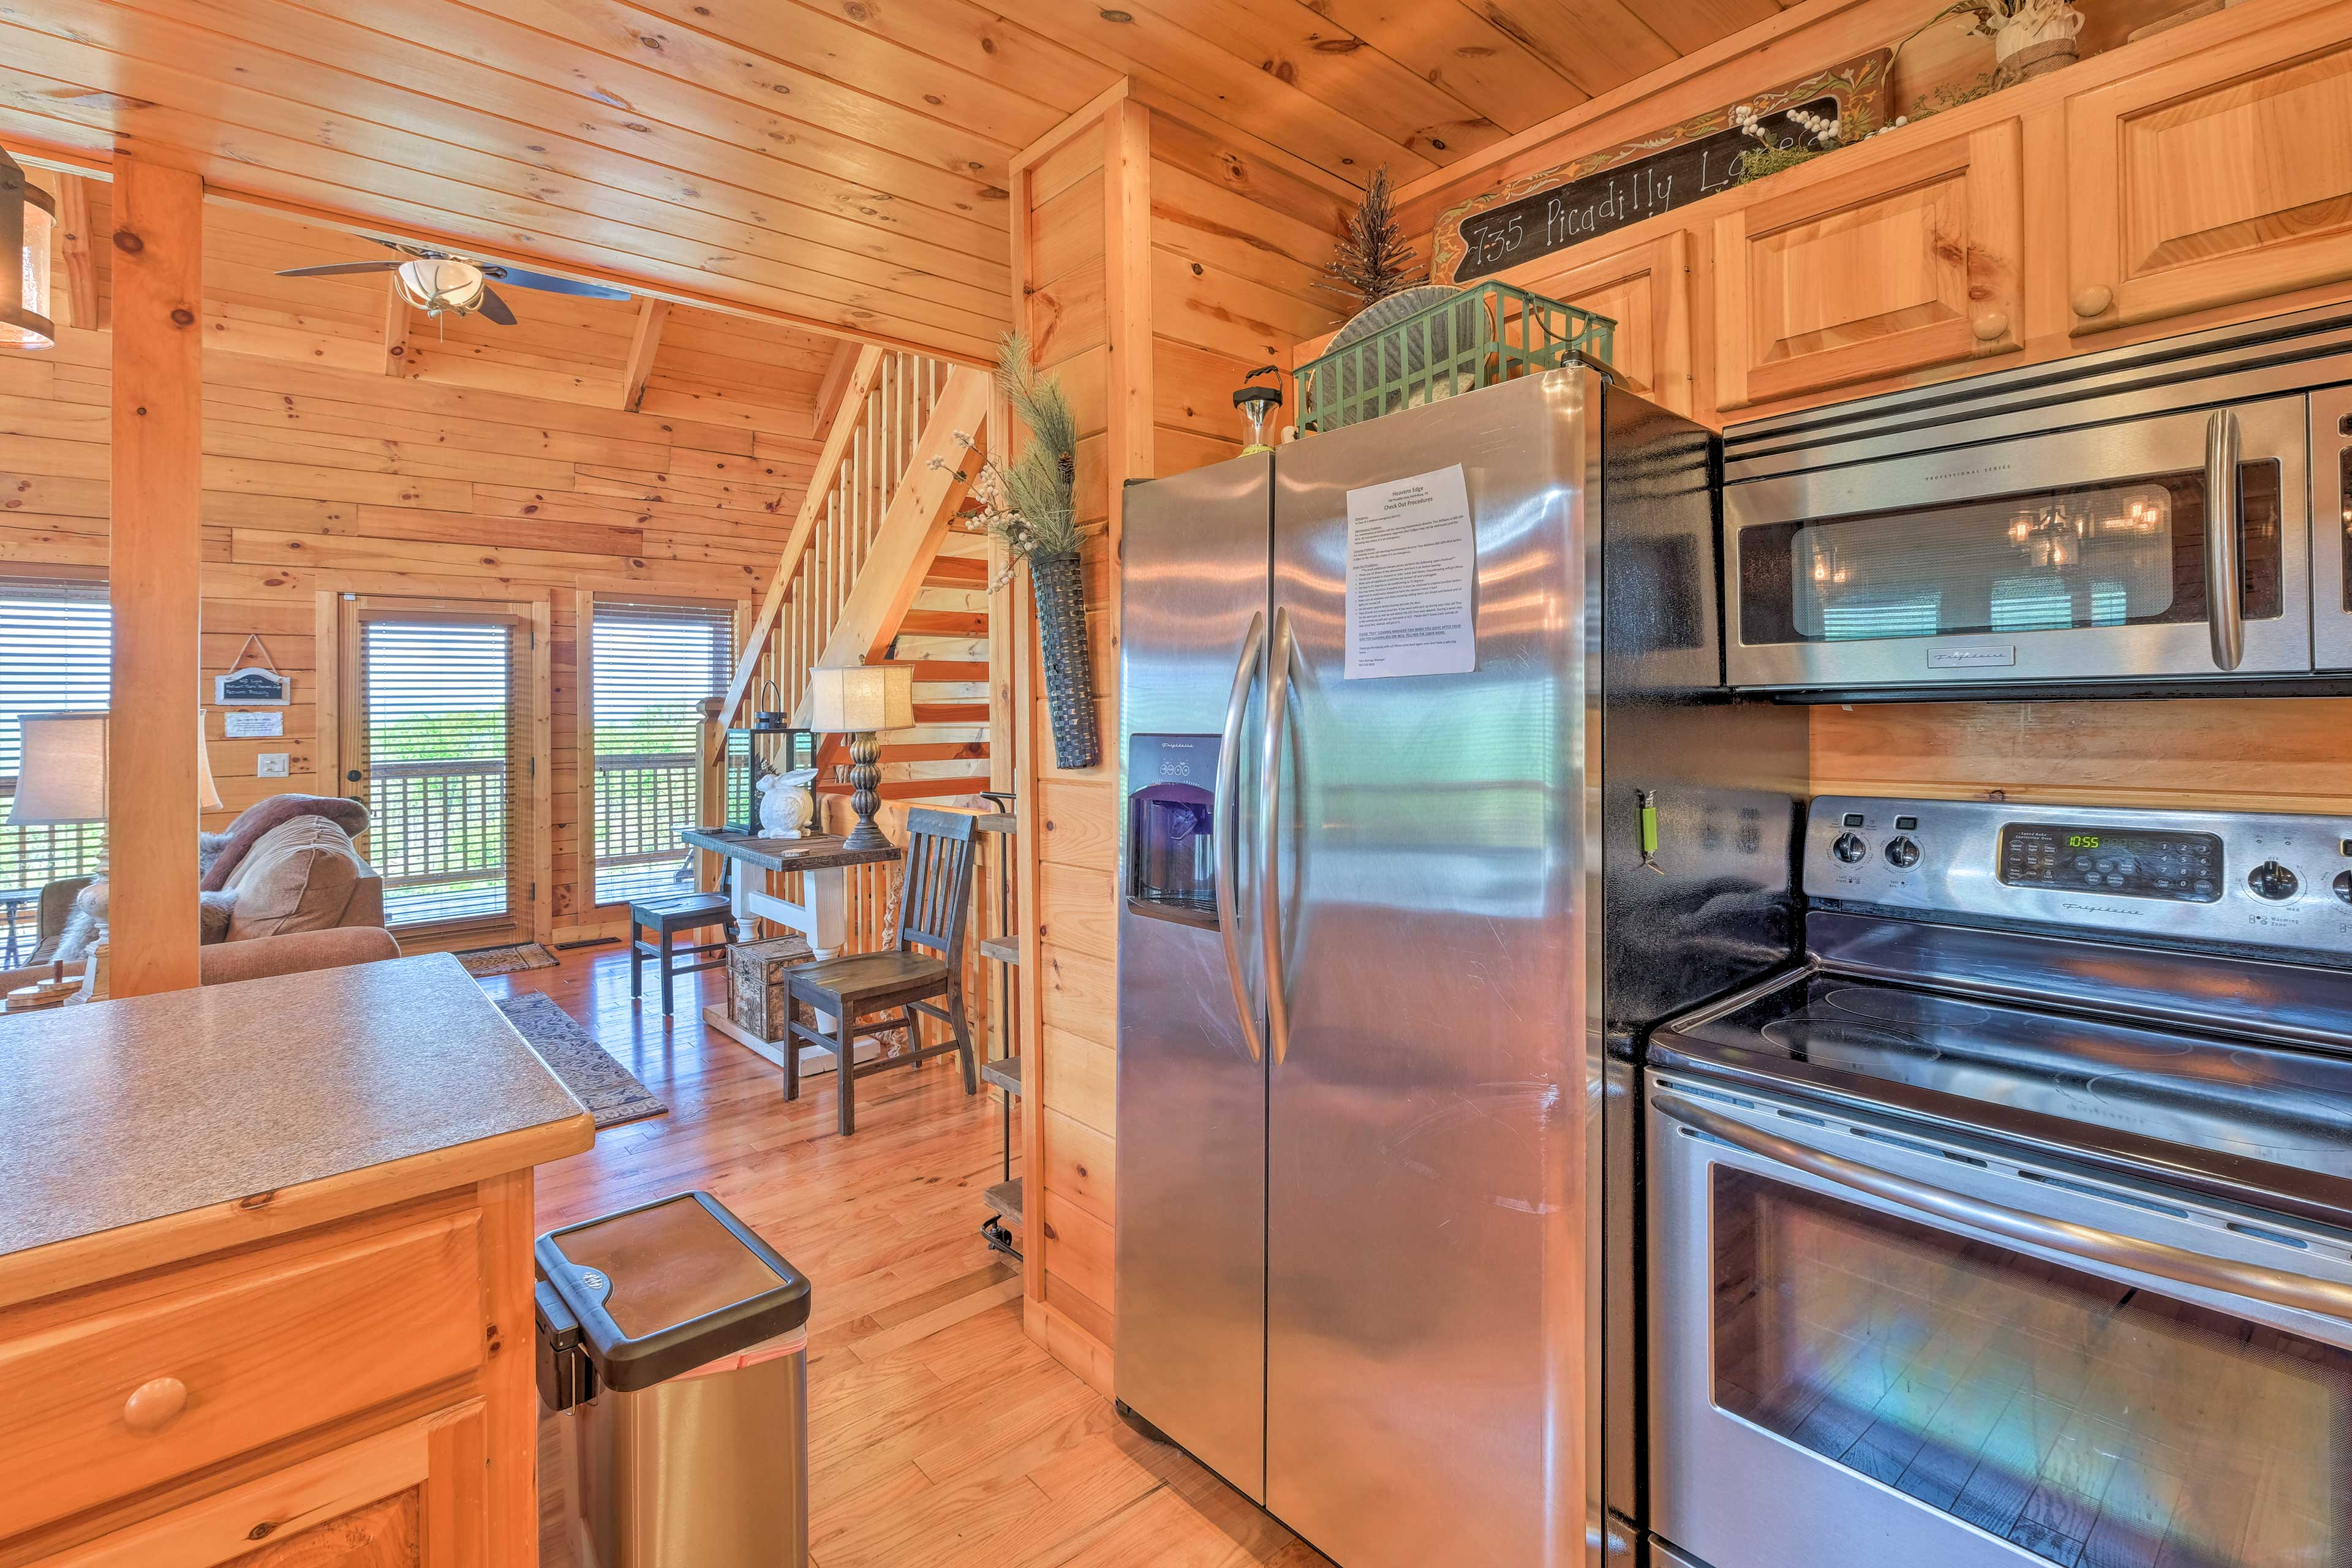 Stainless steel appliances and plenty of counter space make meal prep a breeze.